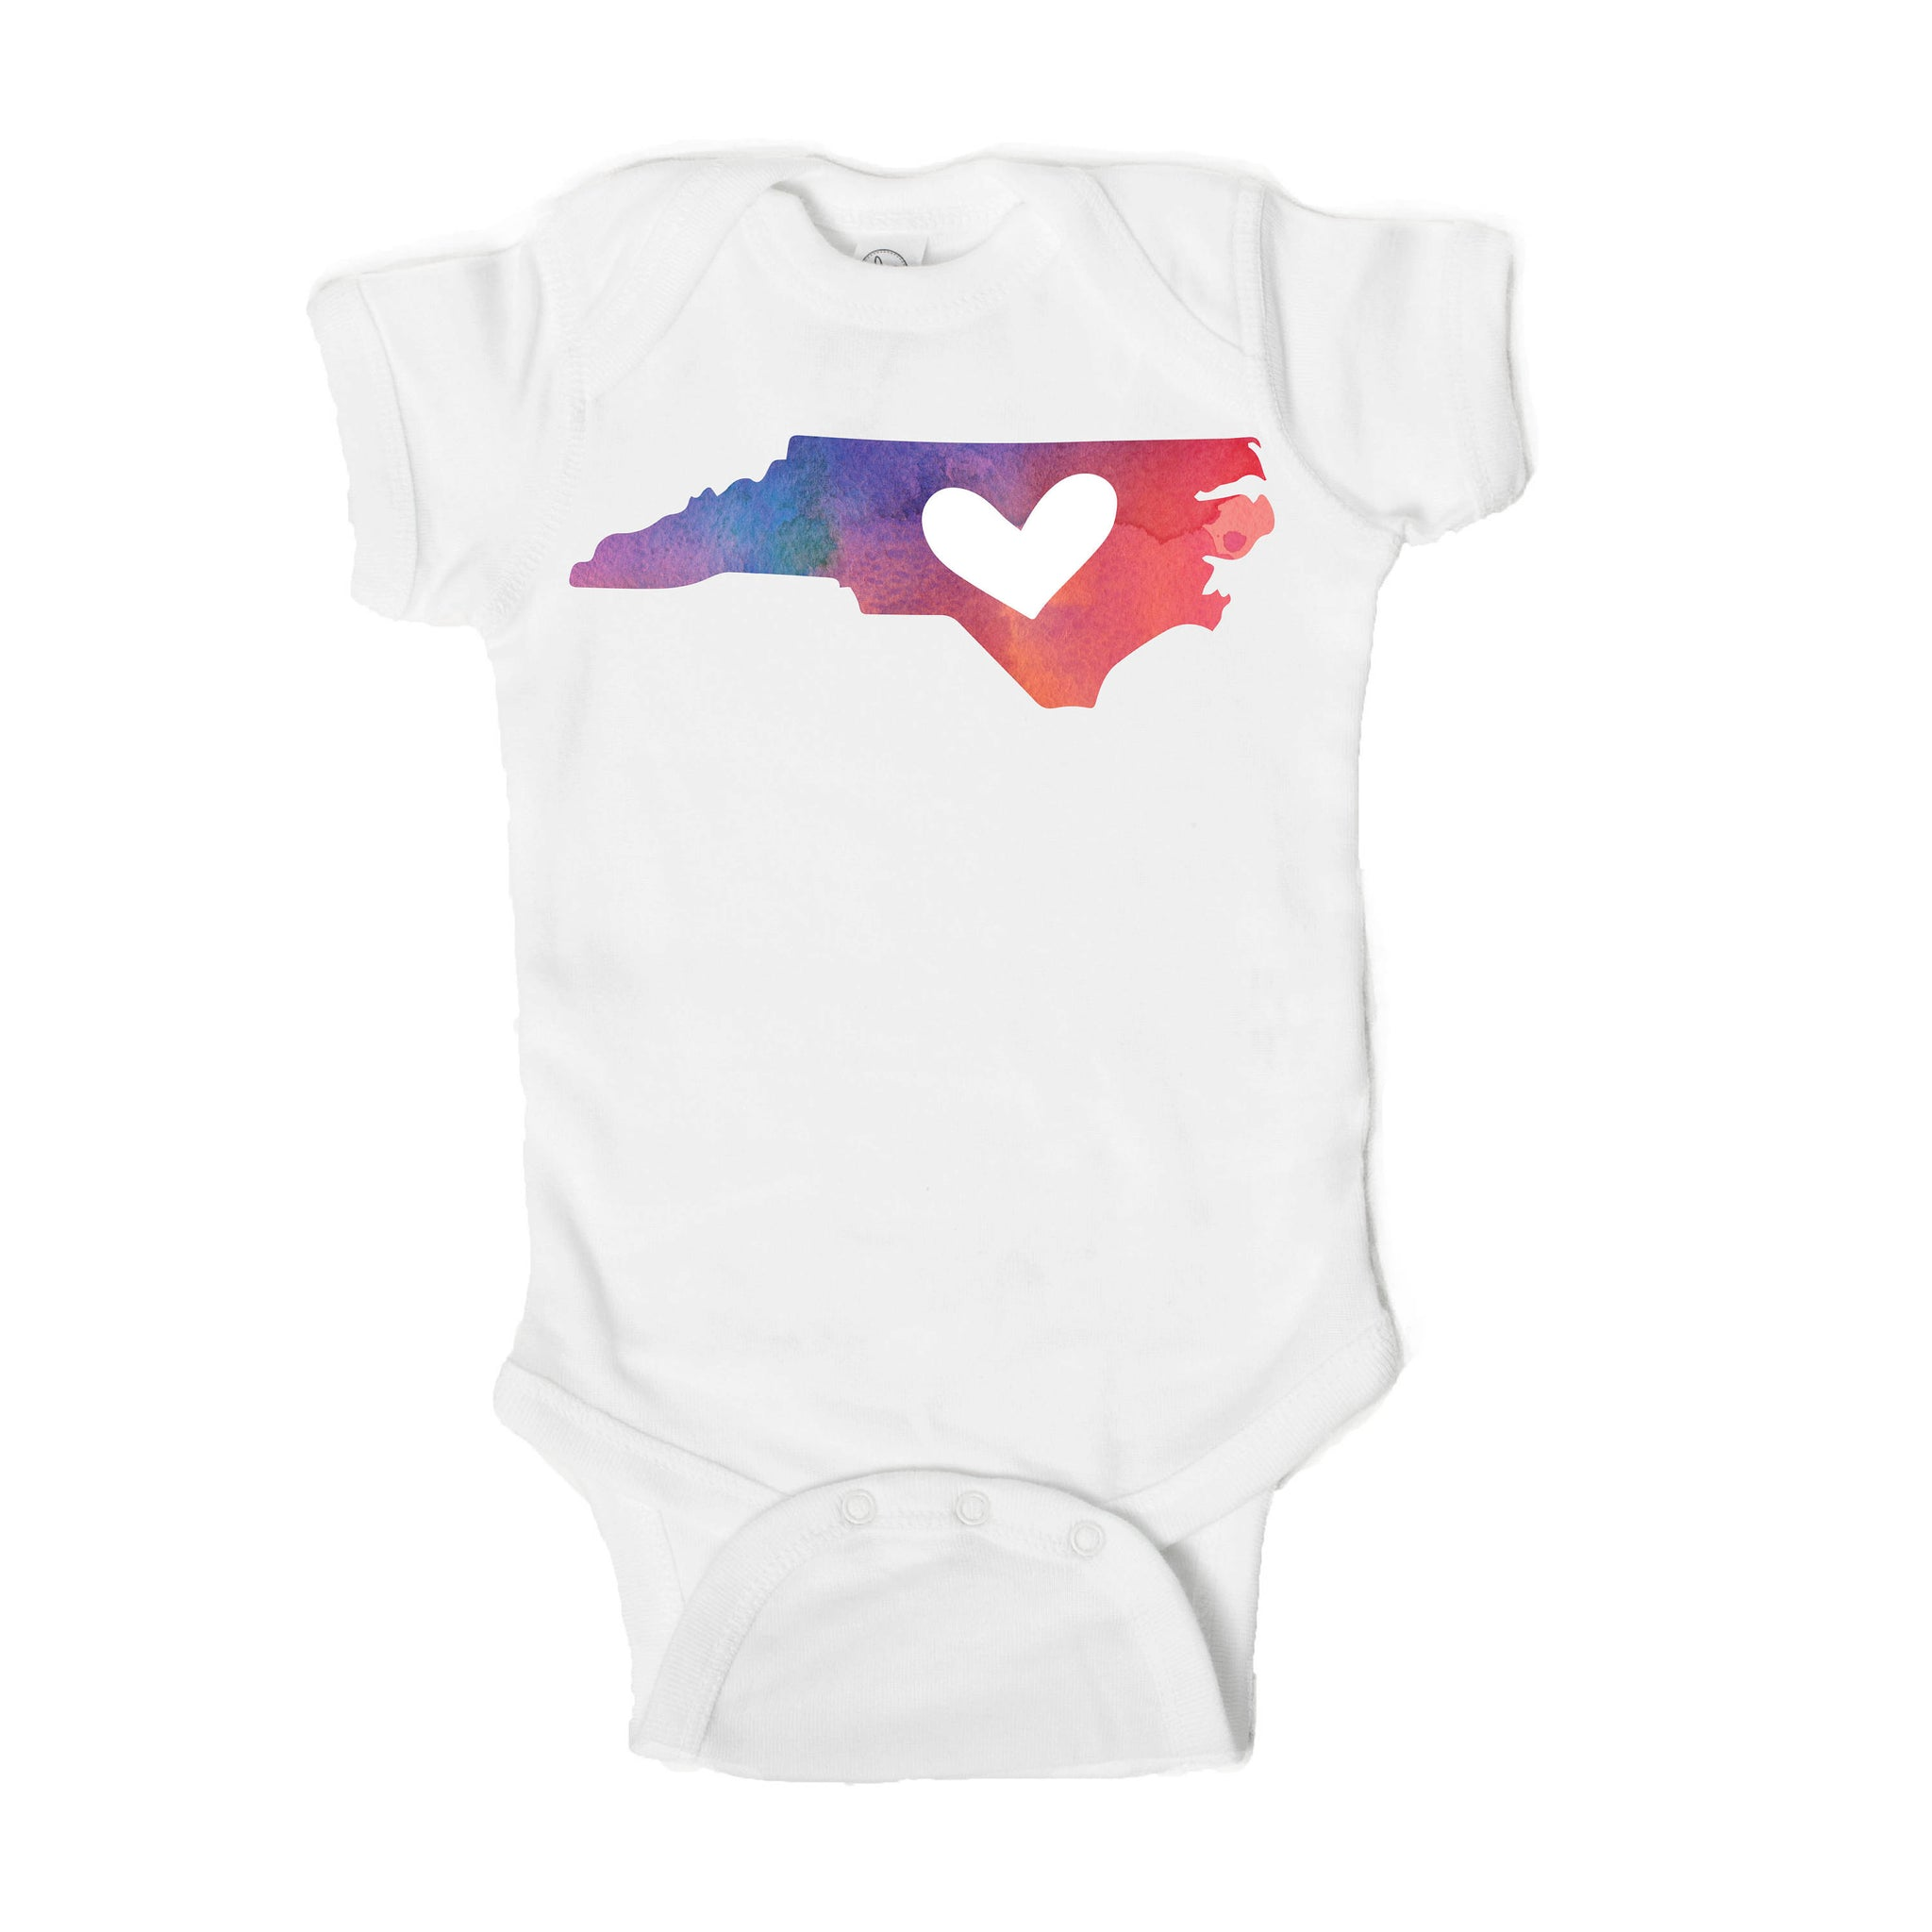 North Carolina Baby Onesie